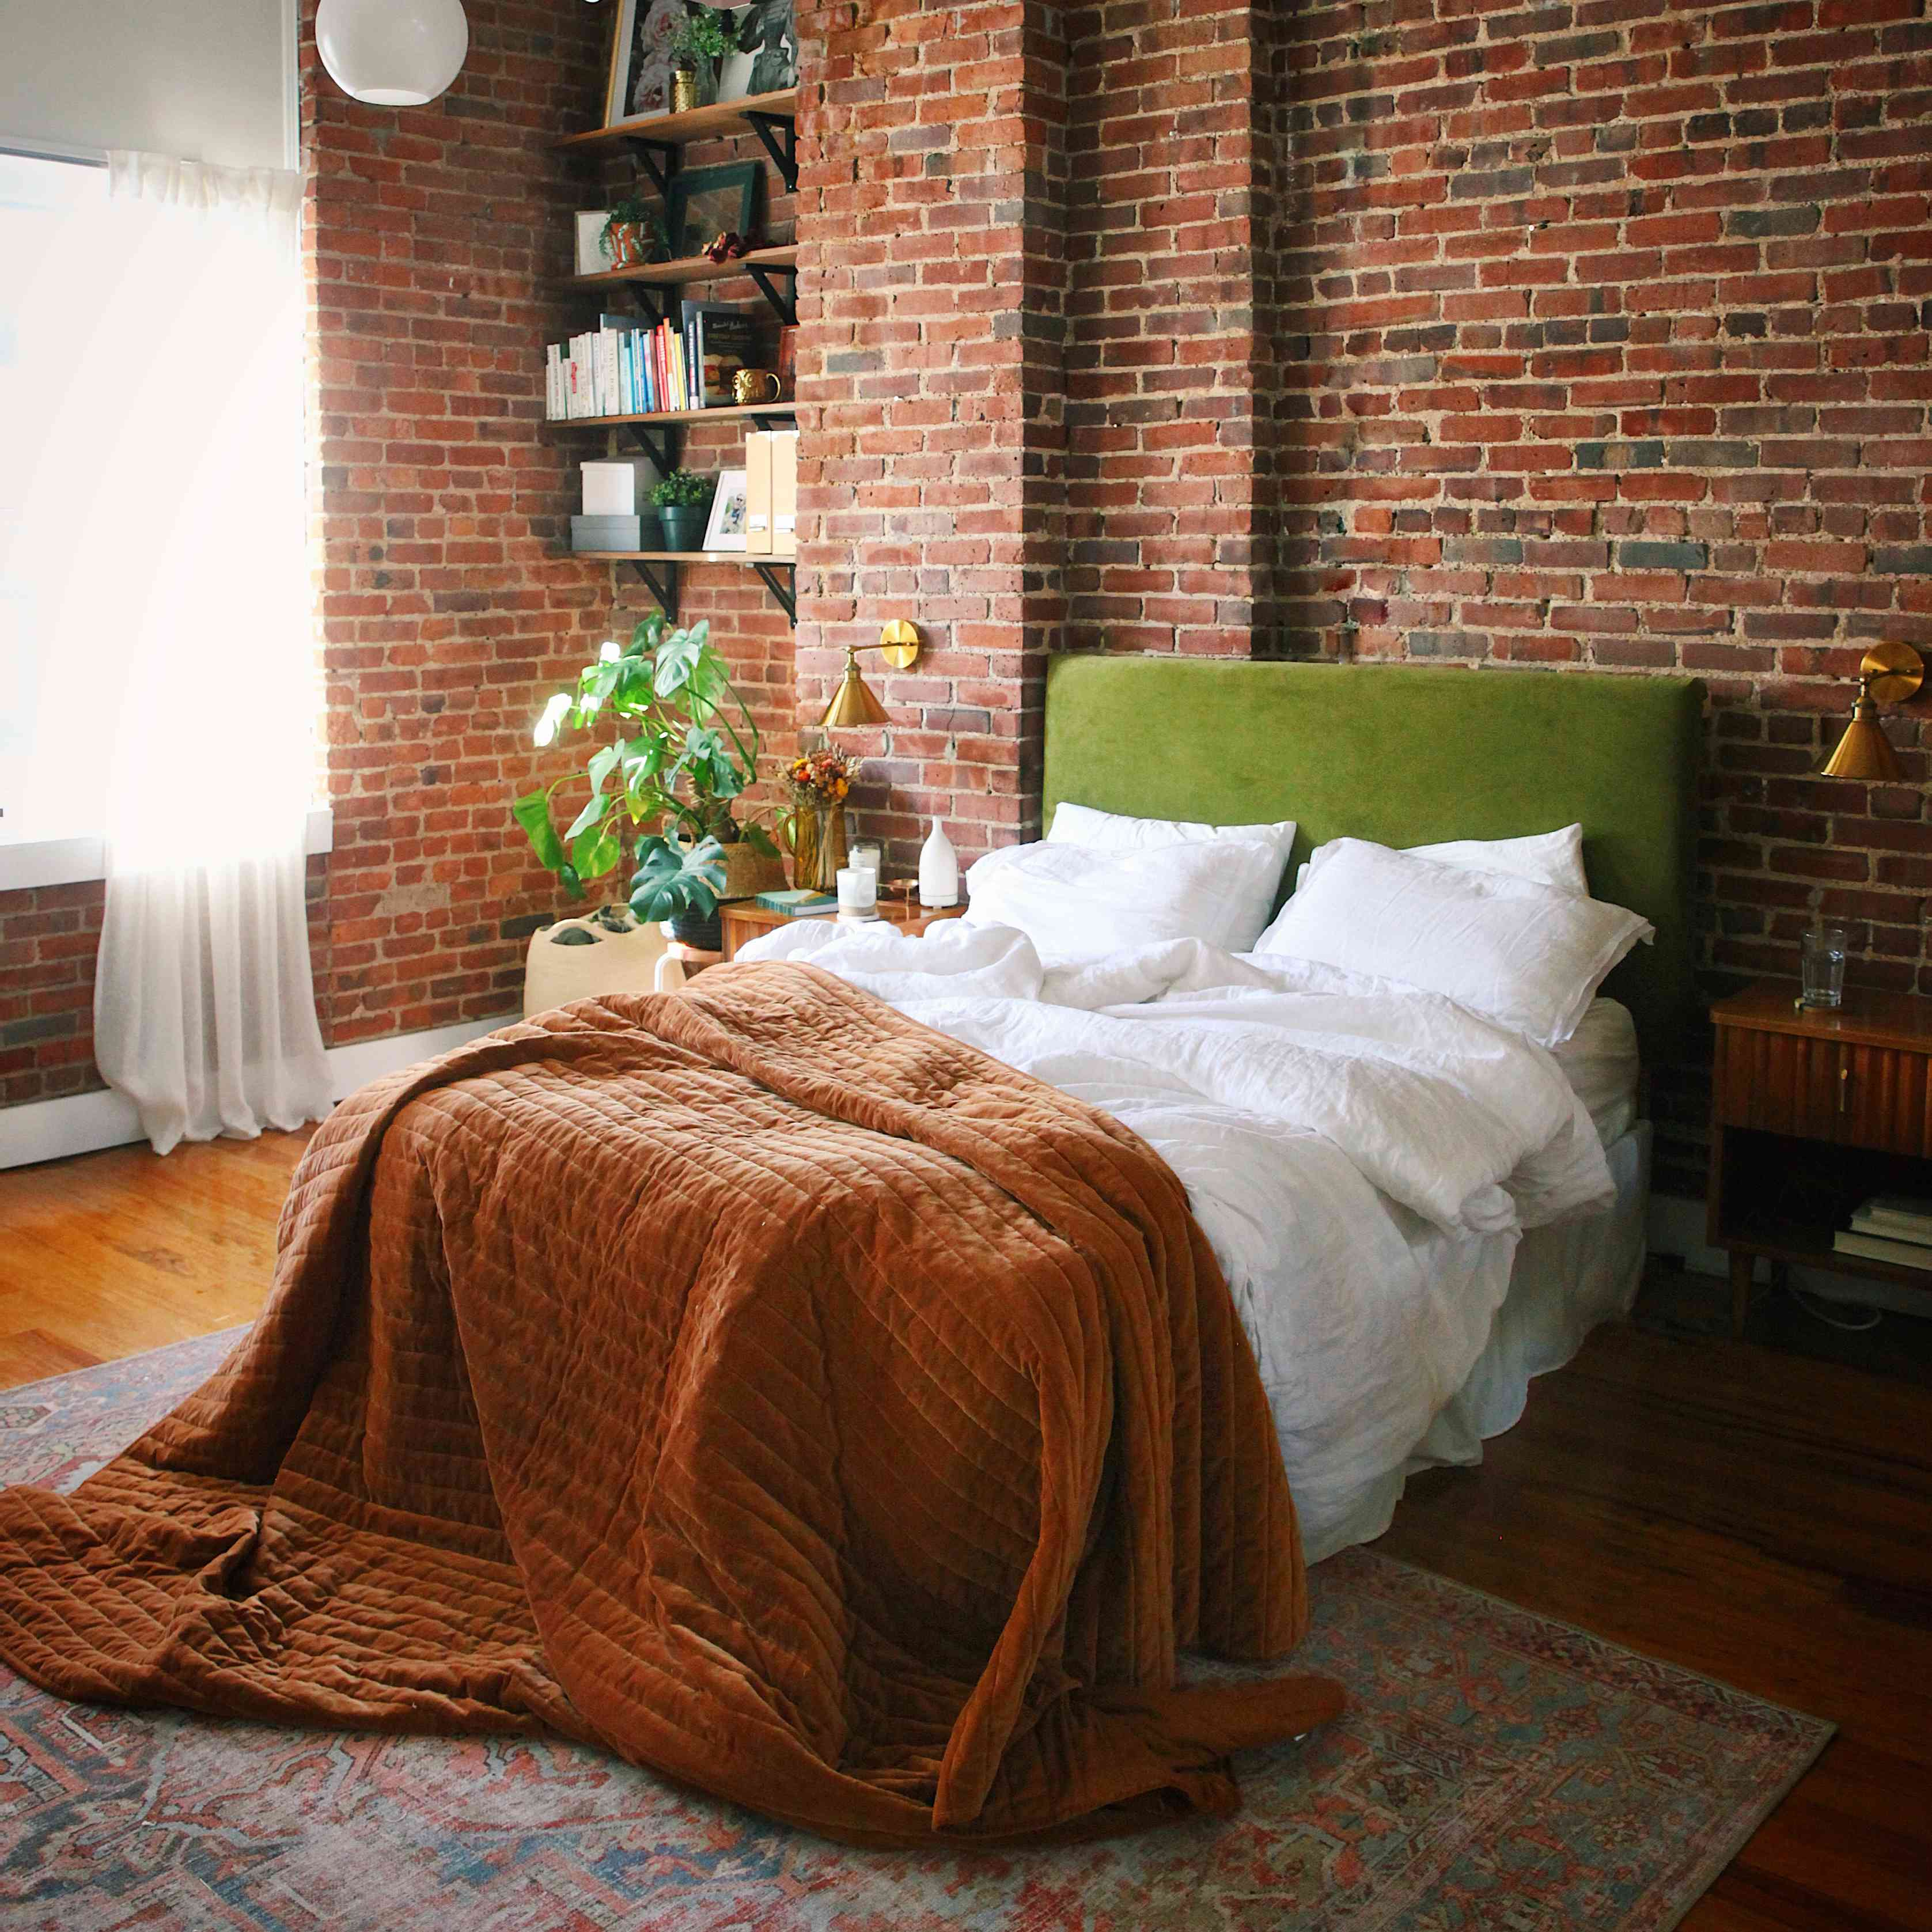 Bed with green headboard in front of brick wall.